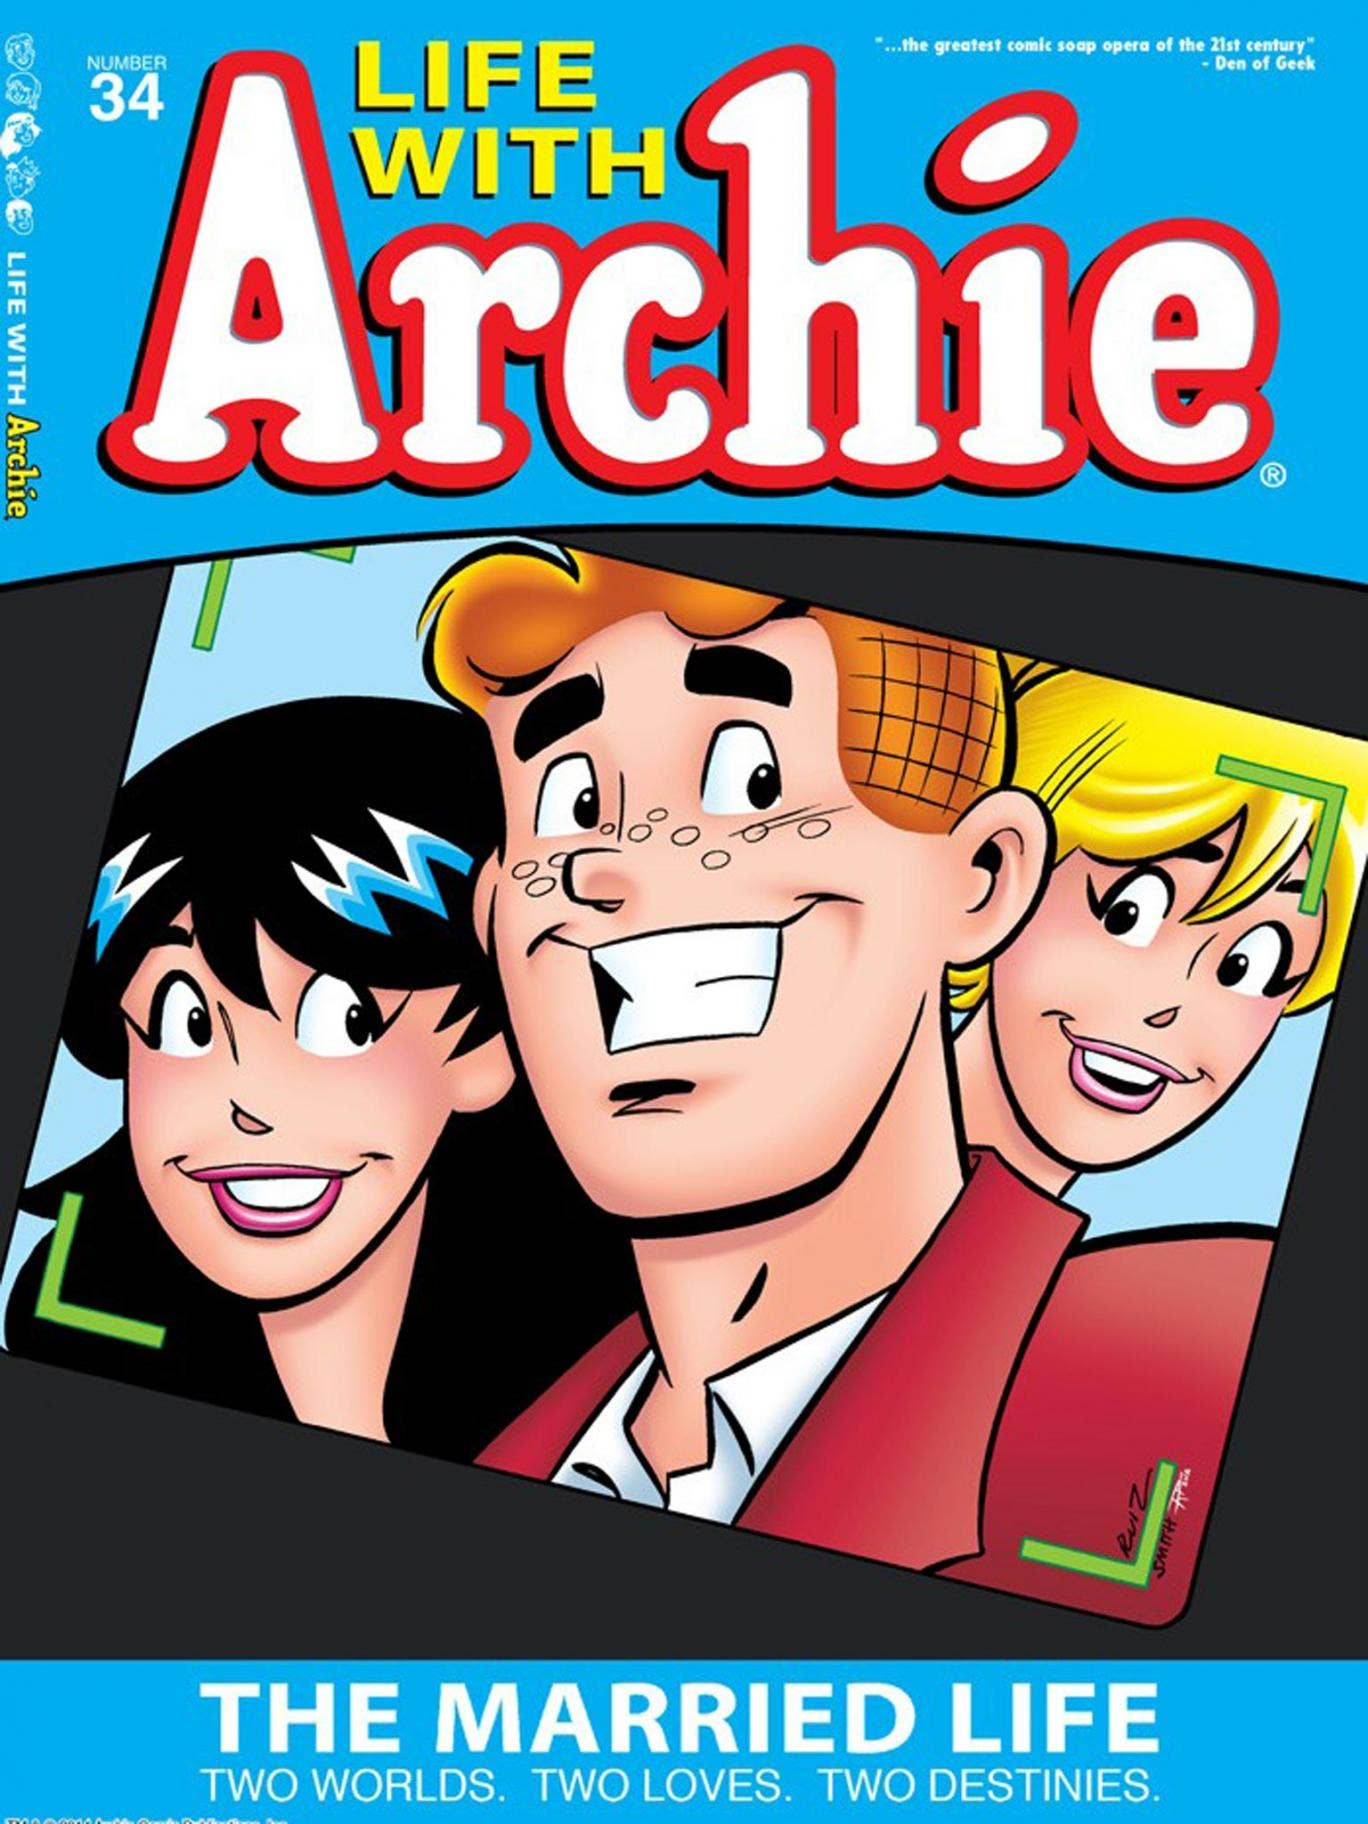 A front cover of the 'Archie' comic